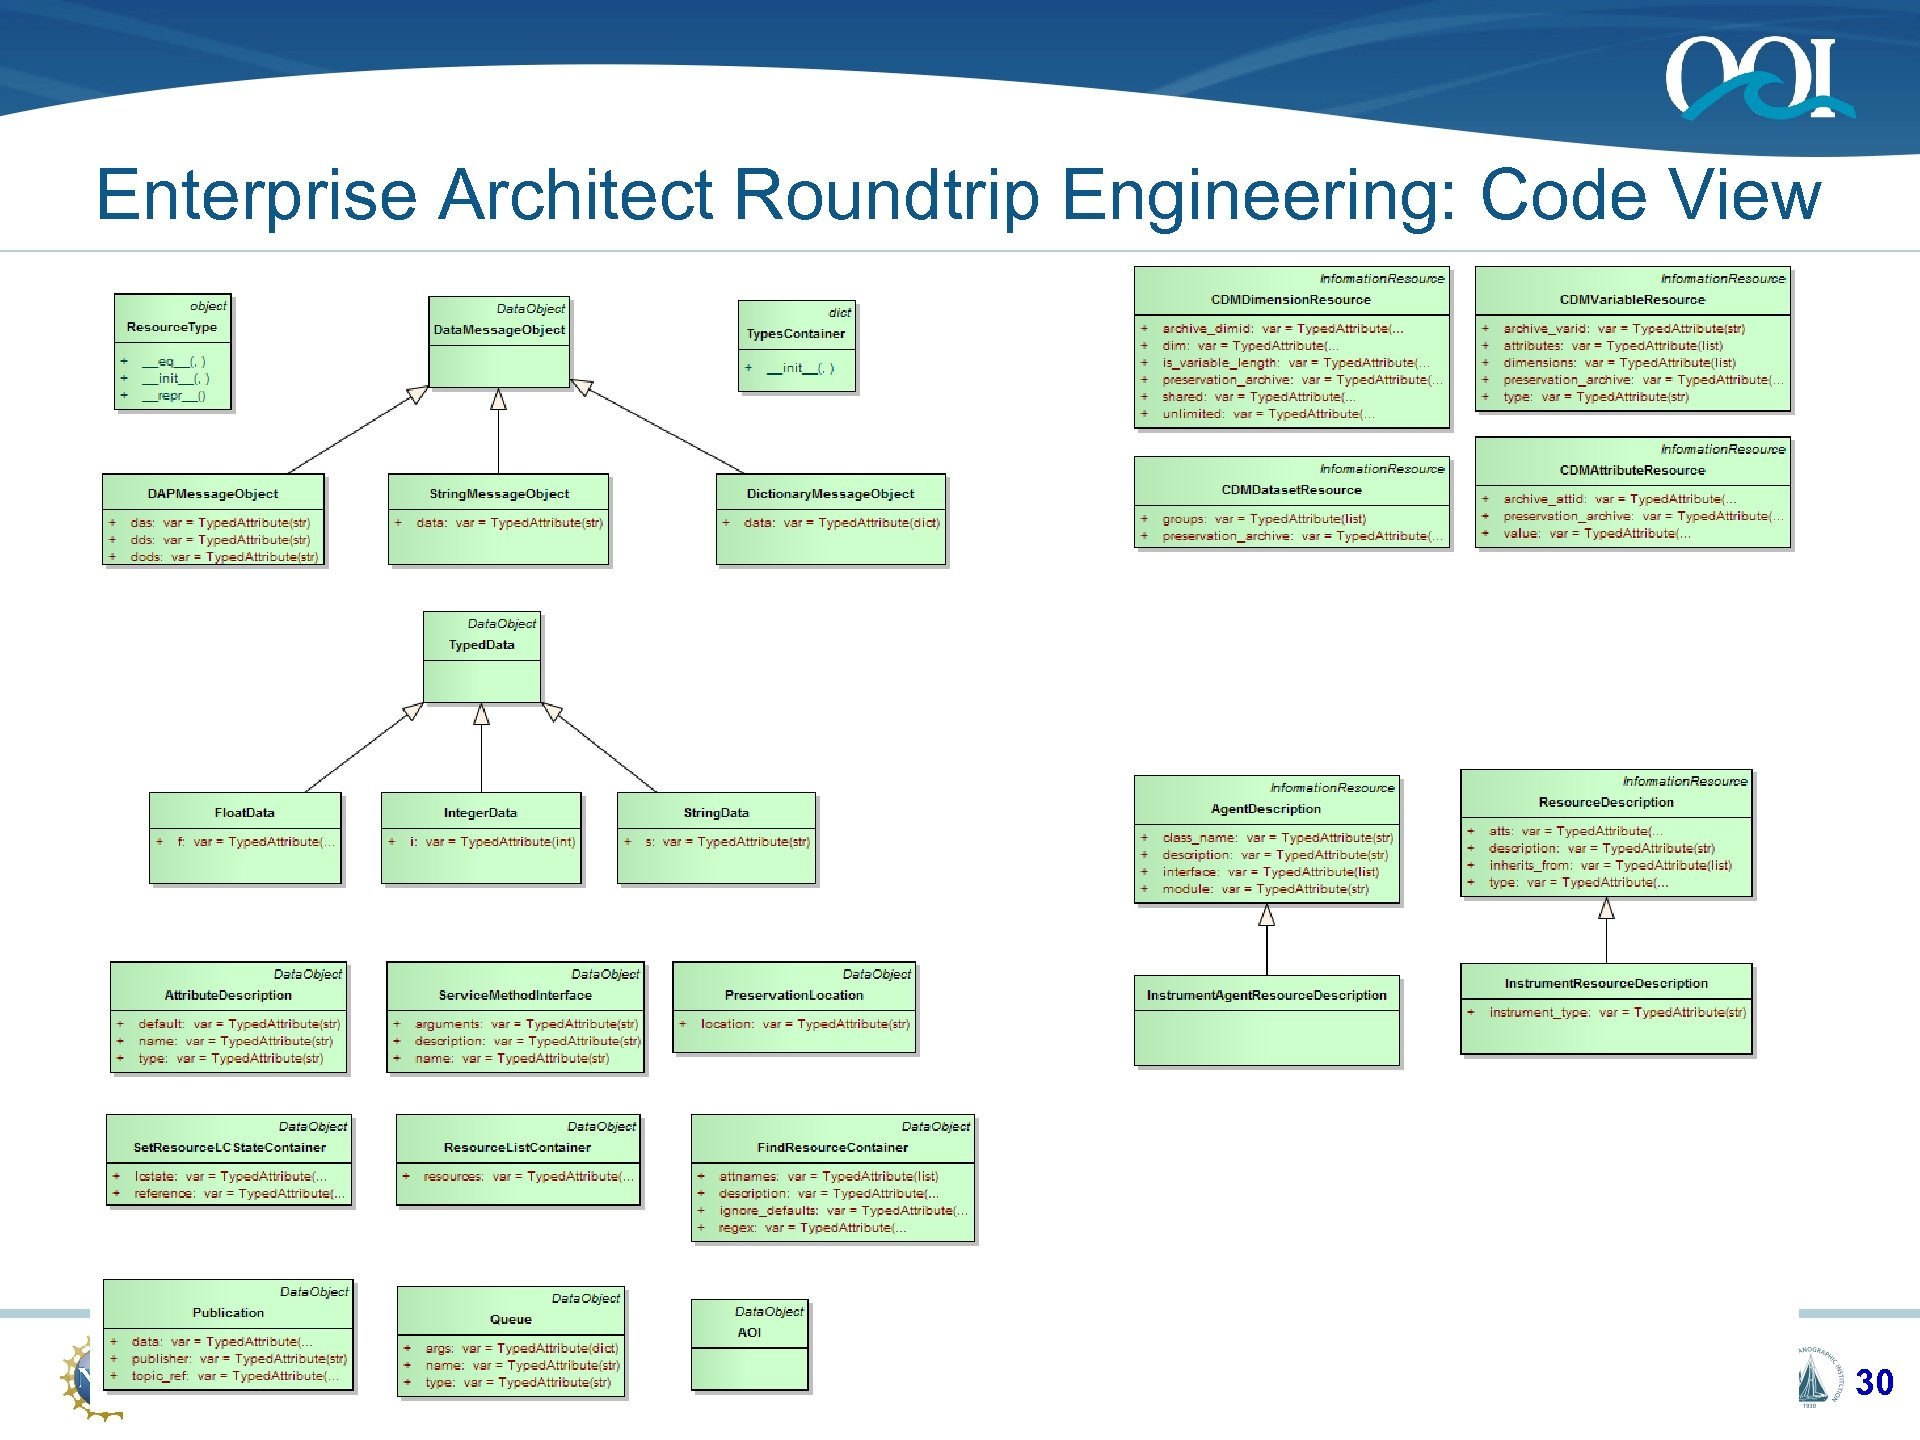 Enterprise Architect Roundtrip Engineering: Code View OOI CI LCA REVIEW August 2010 30